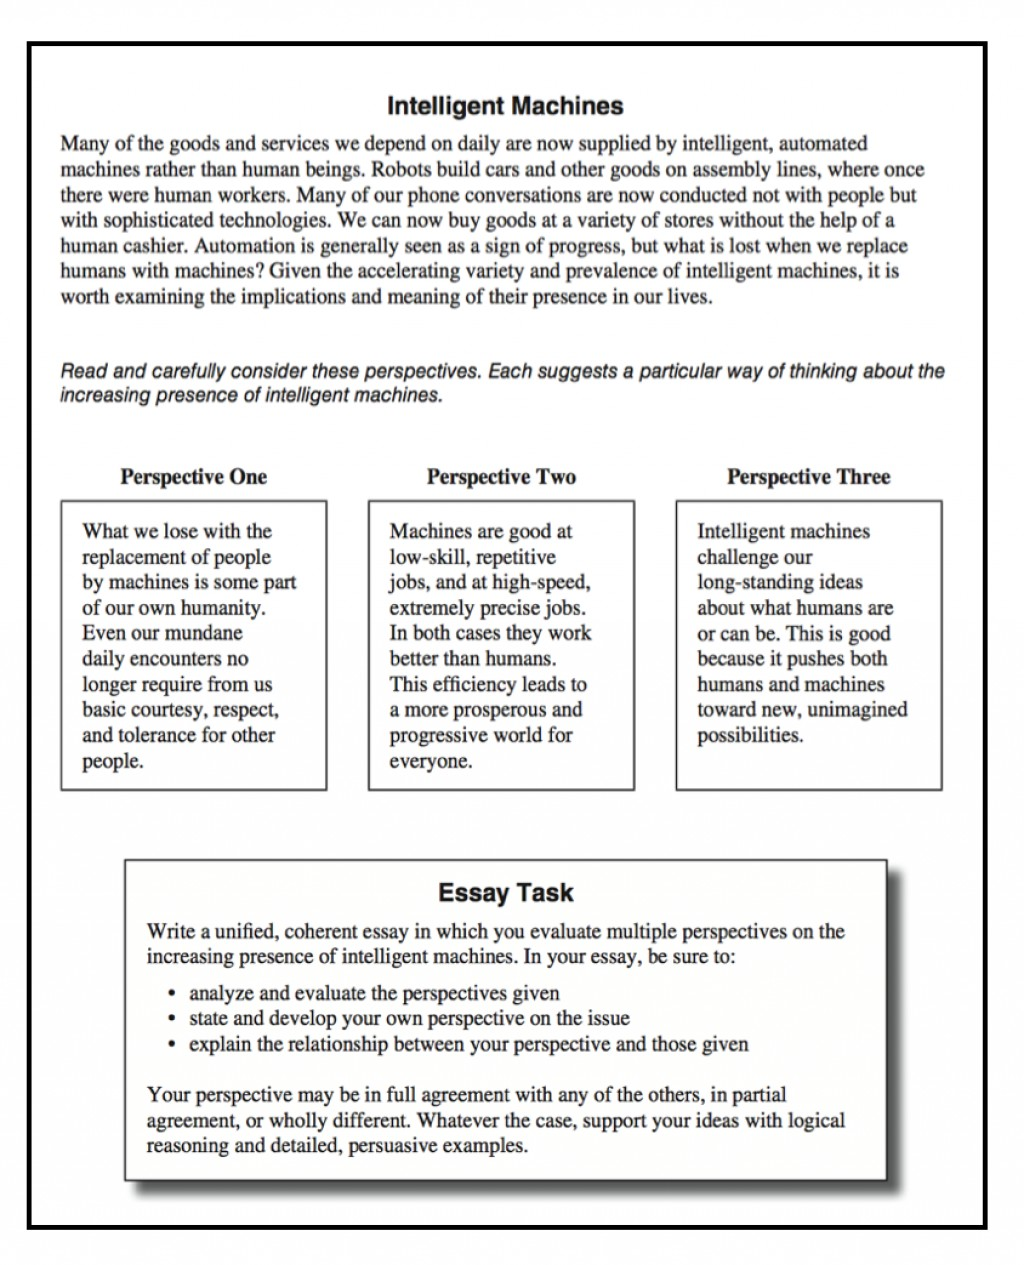 002 How To Write Act Essay Good Sample Prompts Screen Shots Wonderful And Scene Number In A New Killer Pdf Large